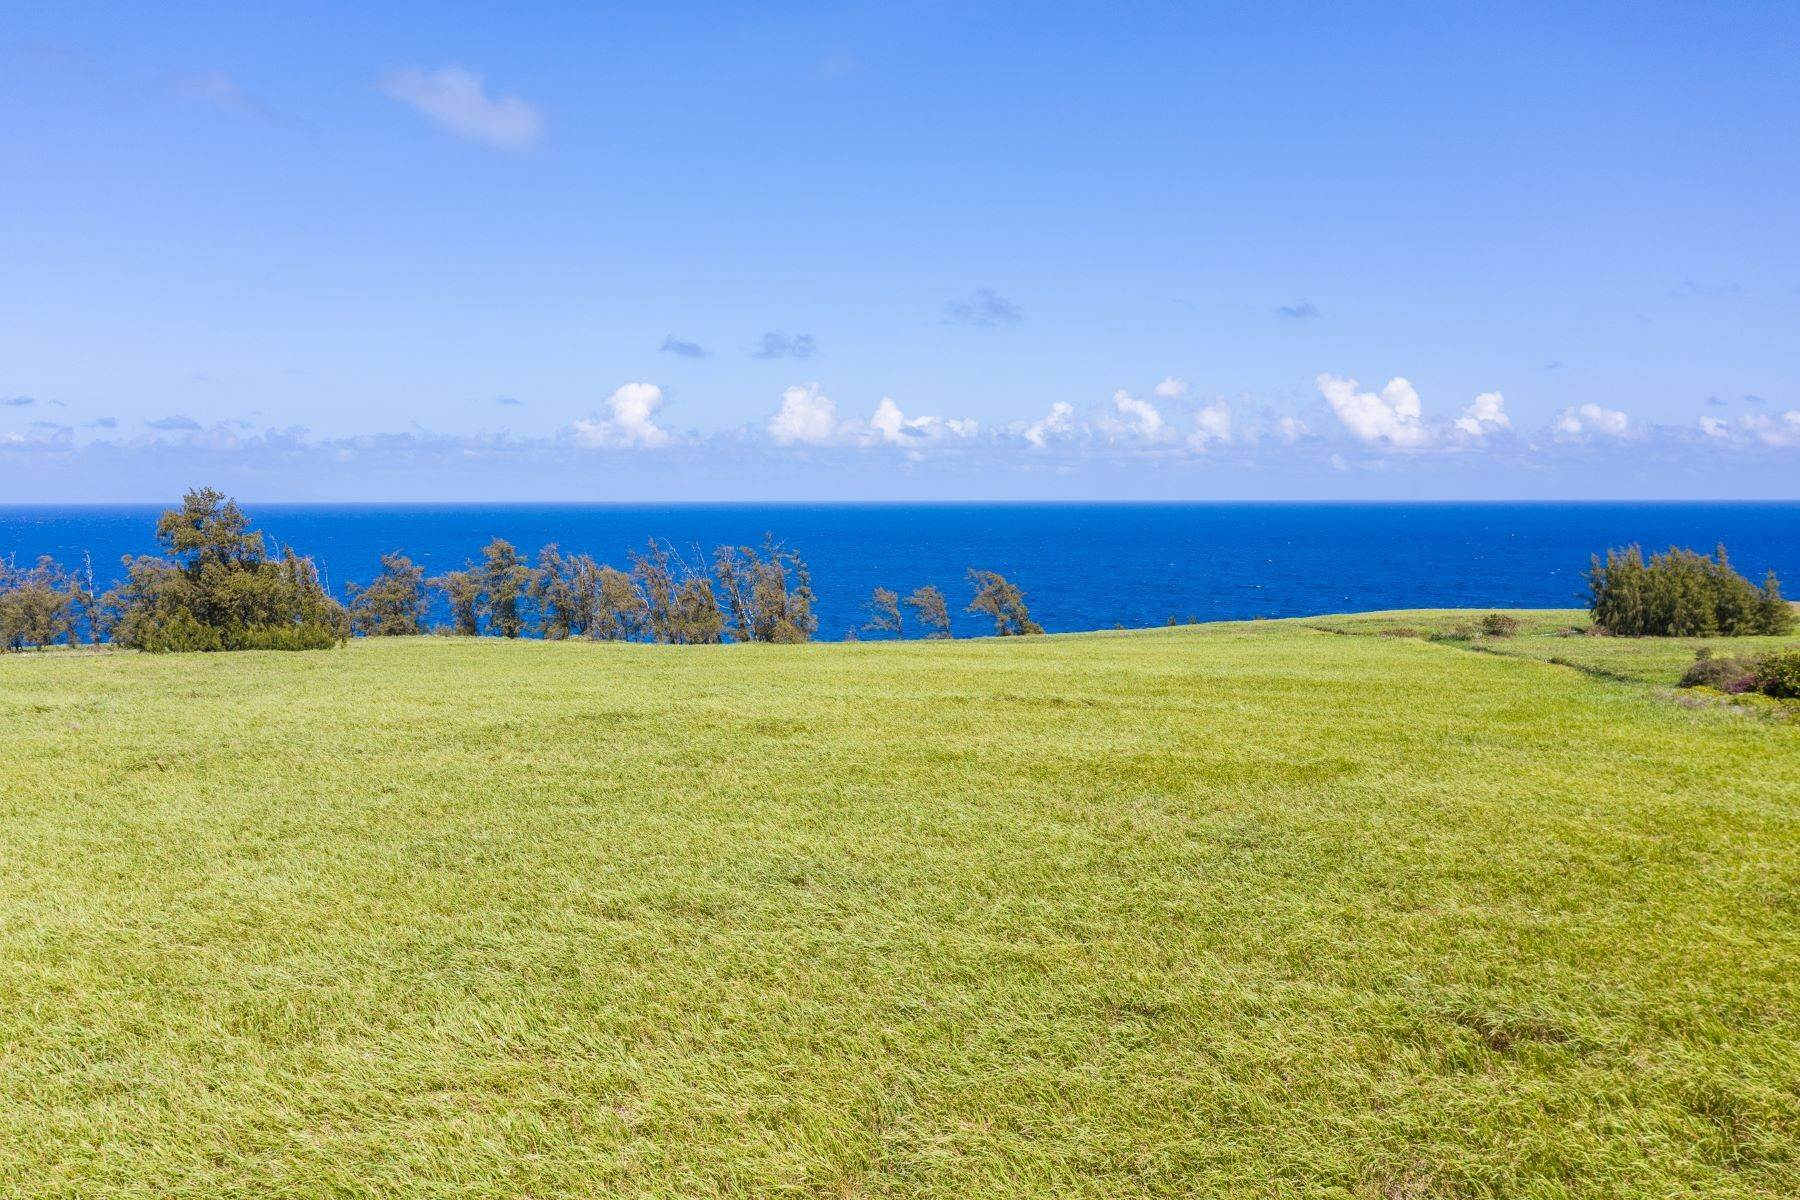 Land for Sale at Pahoa Beach Estates, Hawi, HI 96719 Pahoa Beach Estates Hawi, Hawaii 96719 United States